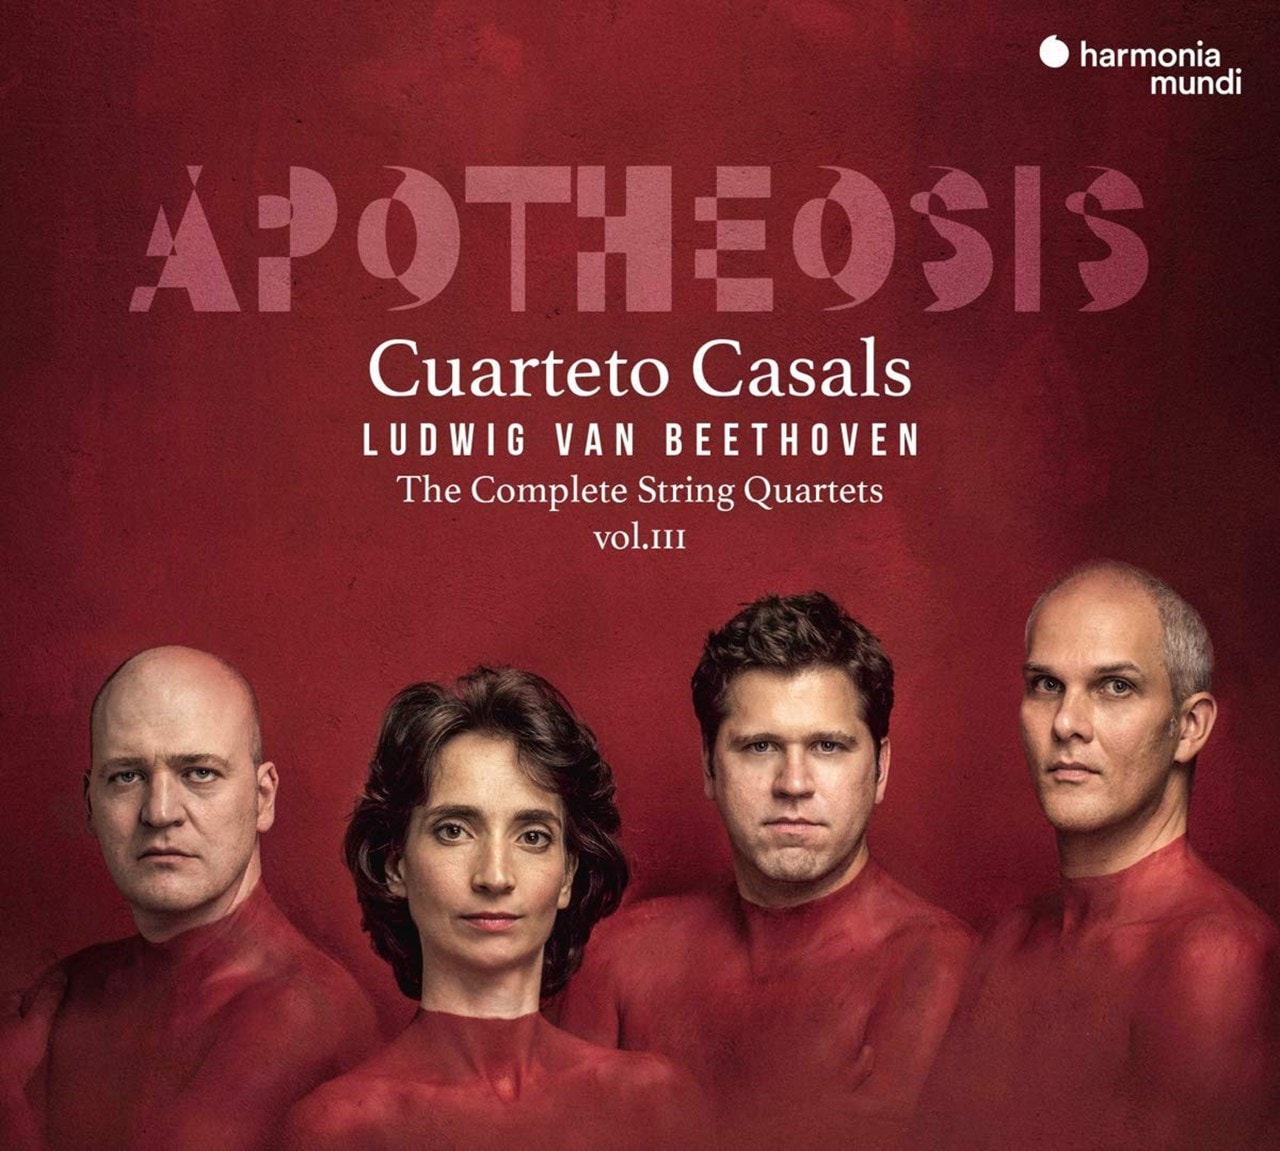 Cuarteto Casals: Apotheosis: Ludwig Van Beethoven: The Complete String Quartets - Volume 3 - 1